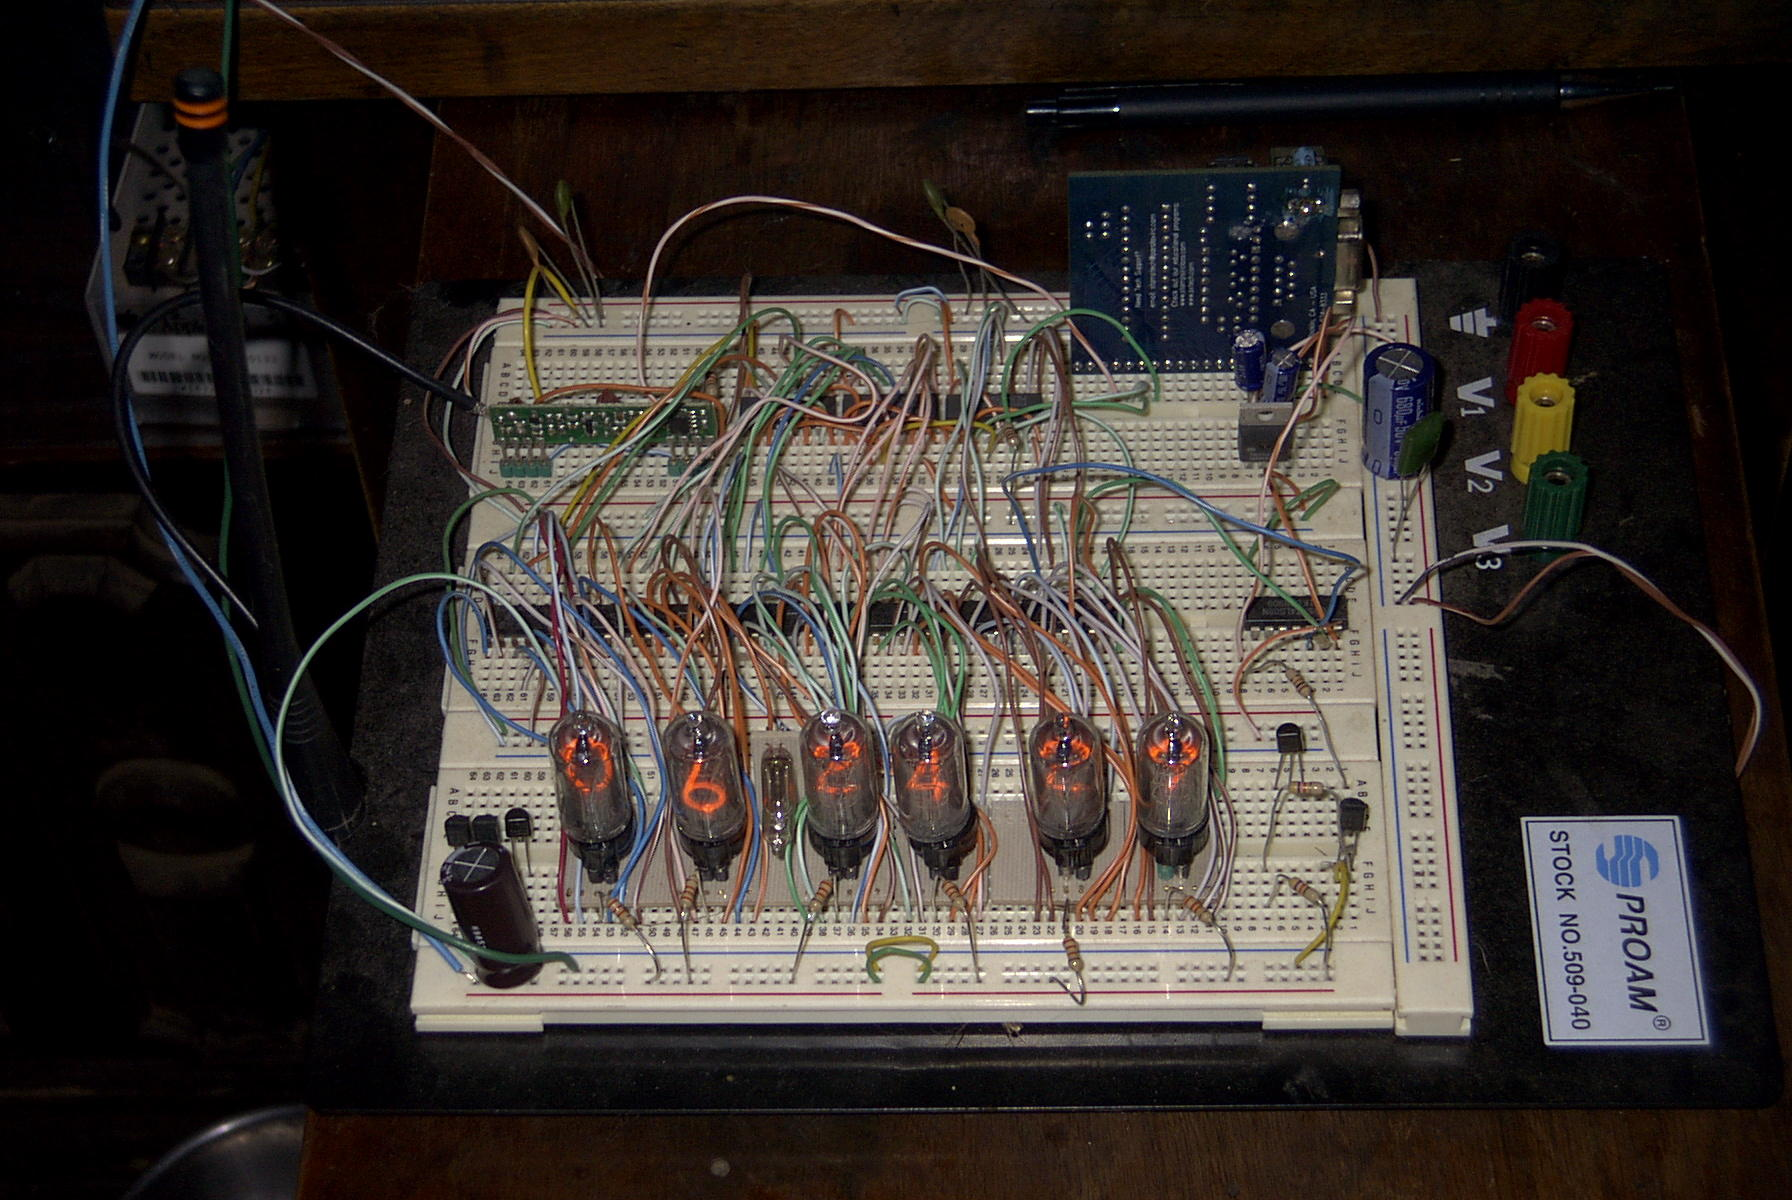 Atomic Nixie Clock Schematic That Would Mean Using A Micro Controller With At Least Many Pins Plus Some For Other Functions So Three Mm74hc595 Shift Registers Are Used To Reduce